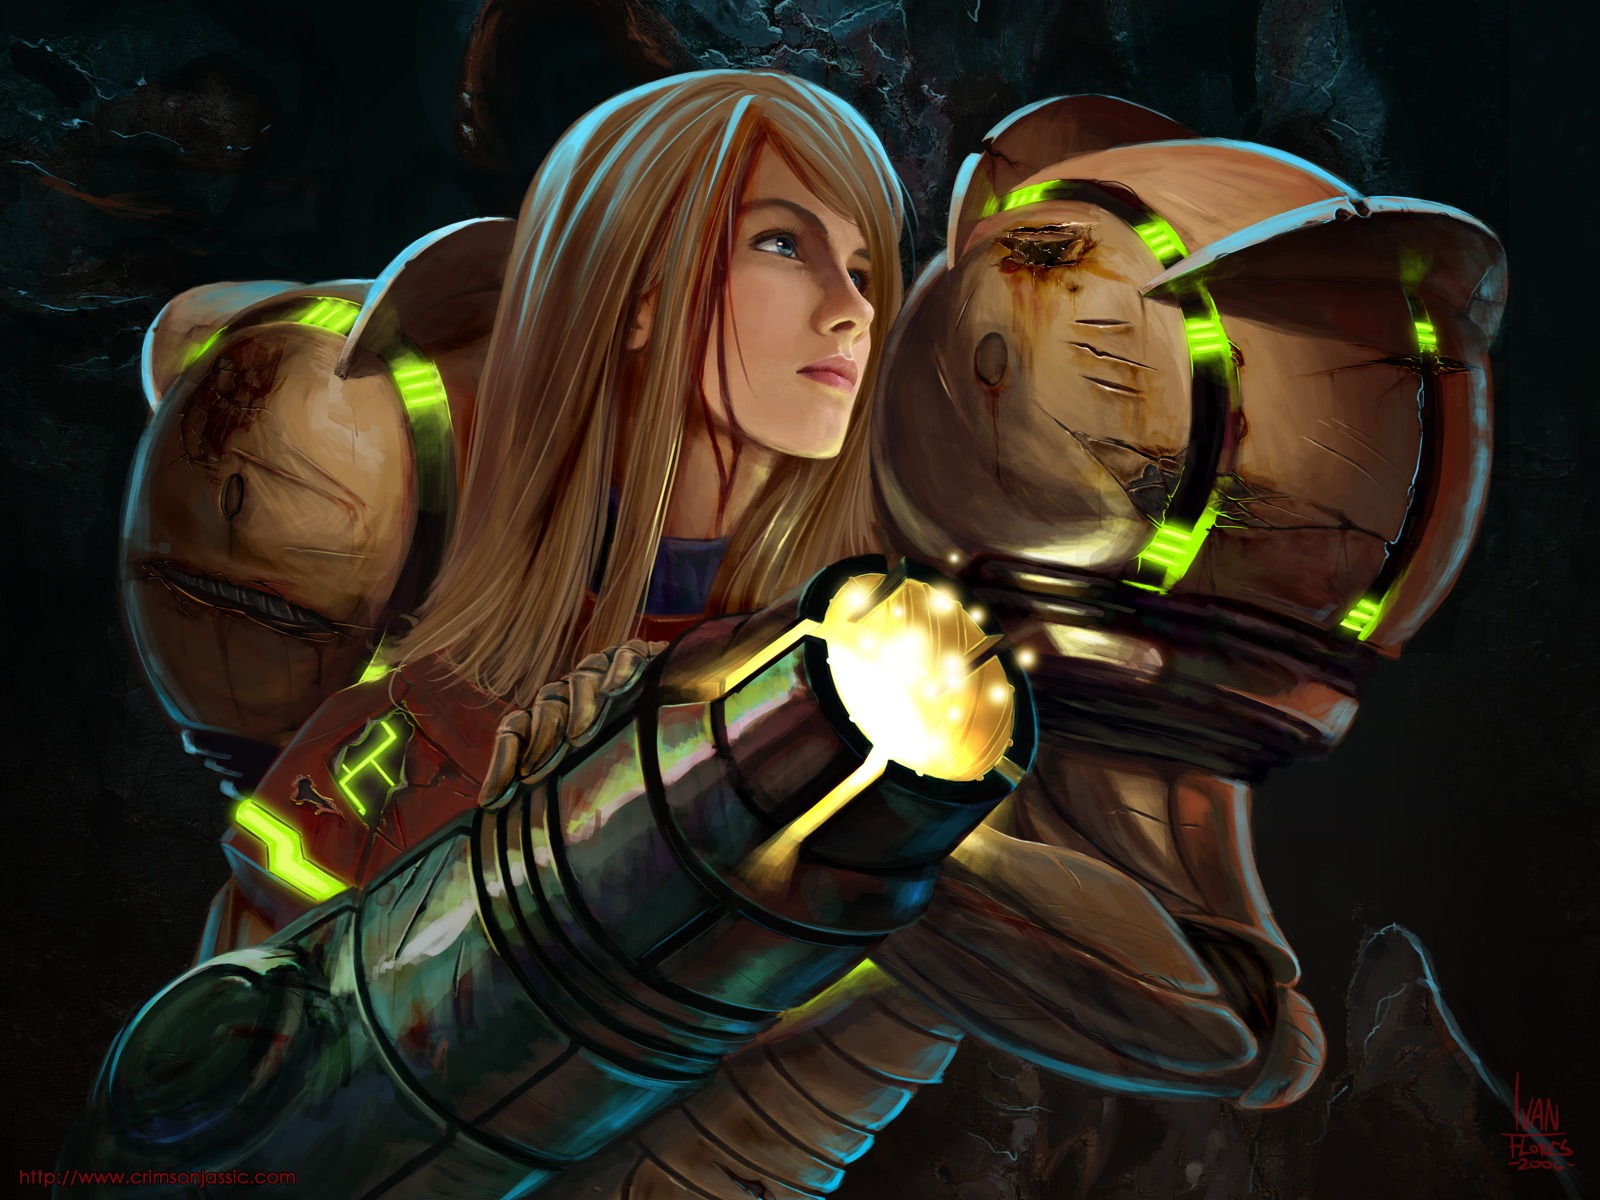 Samus as she appears in concept art of the prime series